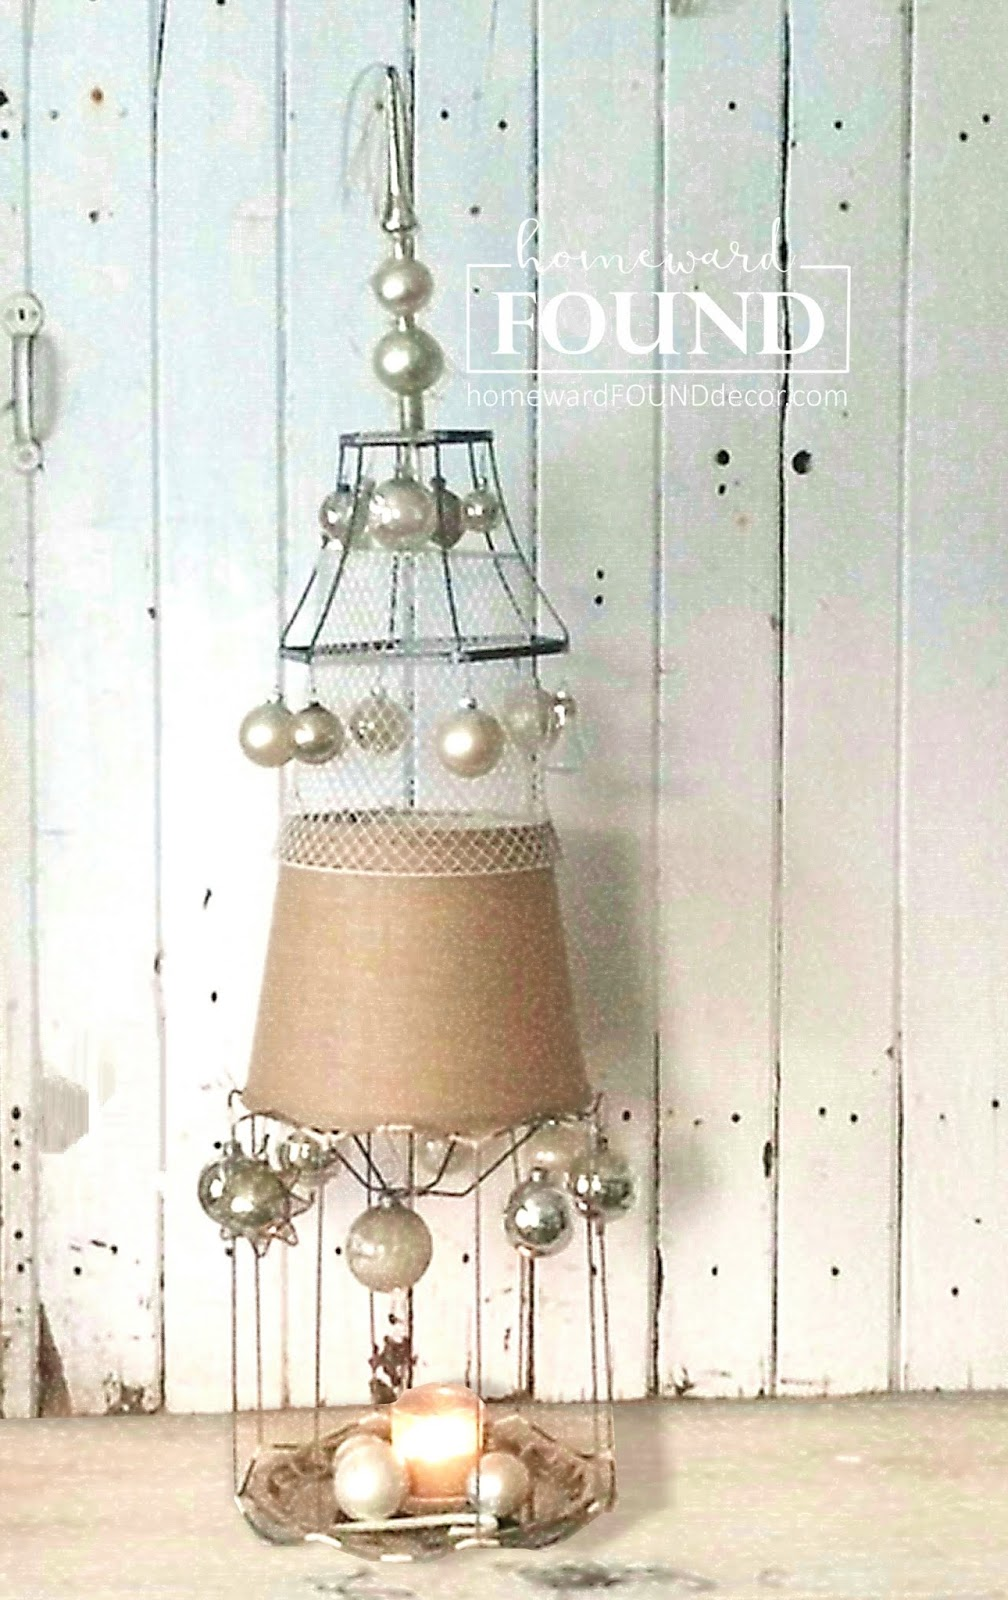 thrifty weekend makeover part i homewardfound decor.htm diy wire lampshade frame christmas tree homewardfound decor  diy wire lampshade frame christmas tree